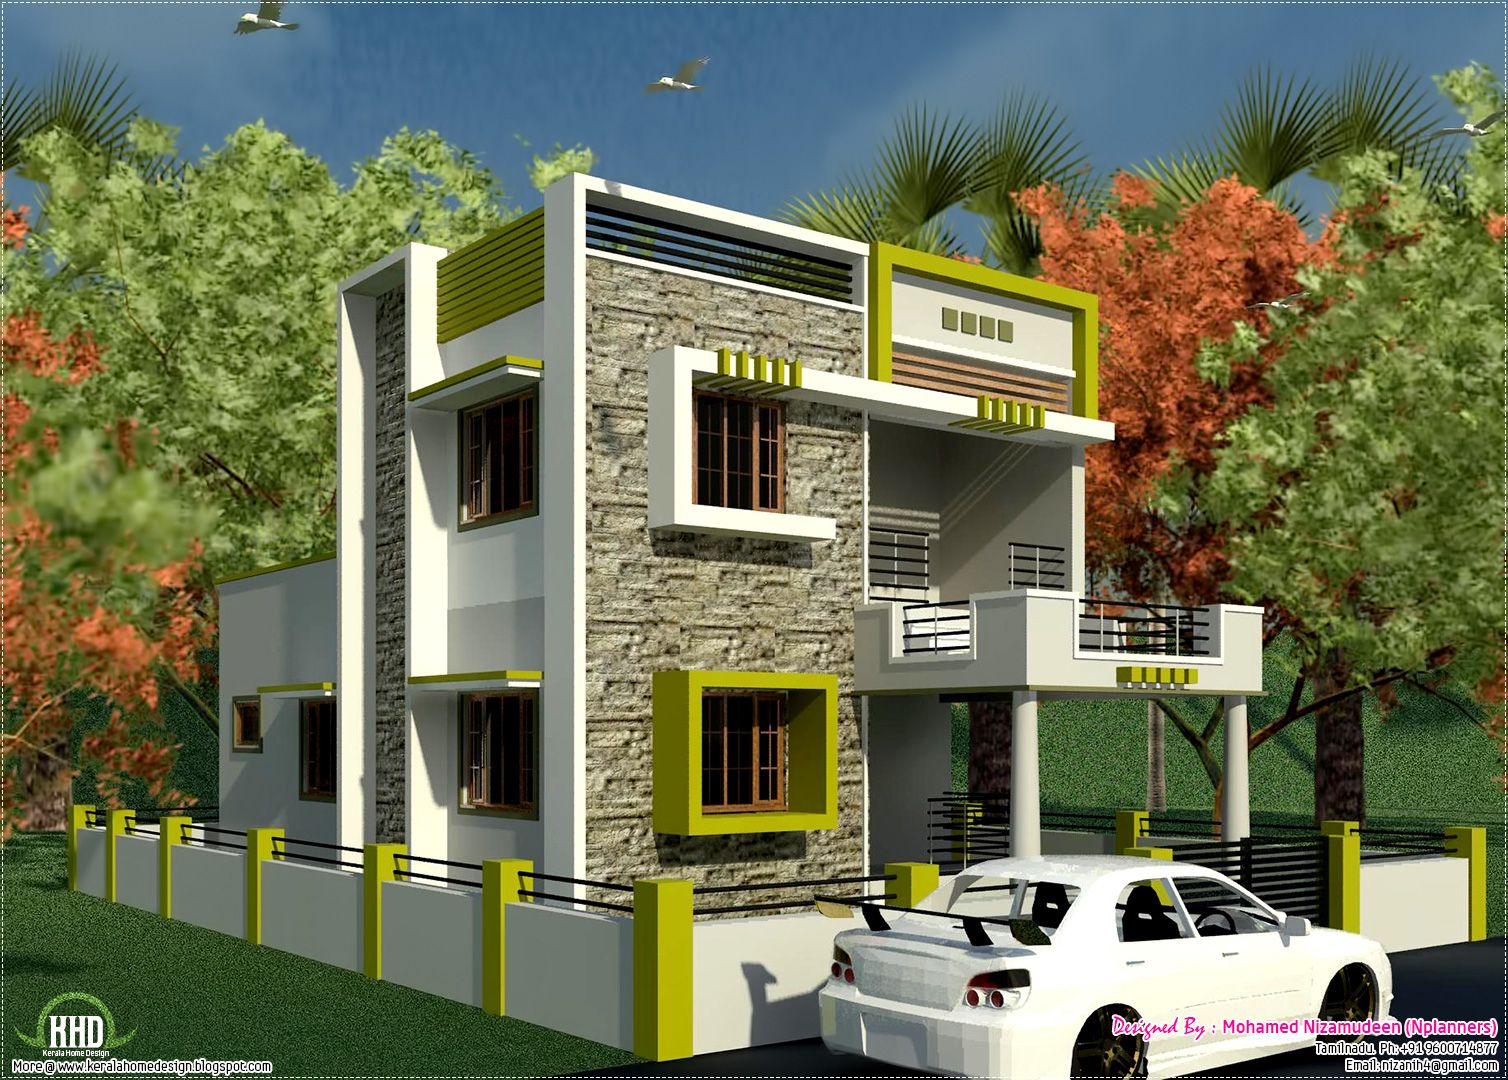 Small house with car park design tobfav com ideas for for Small home outside design